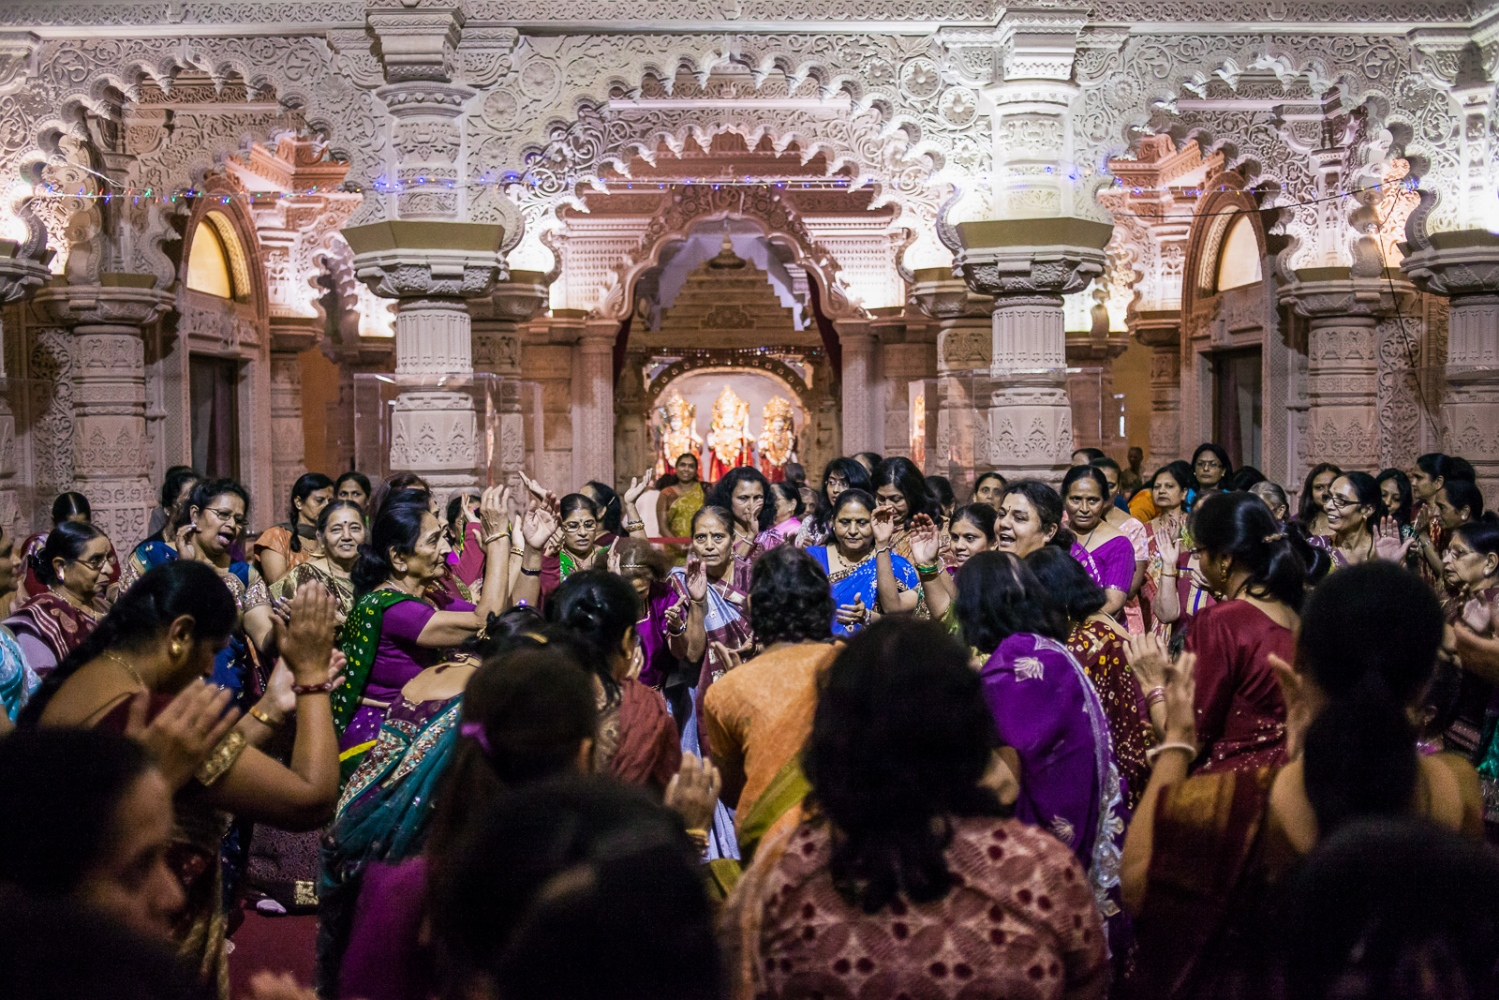 "London, UK, October 22, 2012: Hindu devotees sing and dance during Diwali festival celebrations at Shri Vallabh Nidhi temple. The ""festival of lights"" is one of the most important Hindu celebrations. Devotees come together to perform traditional dances and rituals, such as the lighting of small clay lamps filled with oil to signify the triumph of good over evil."